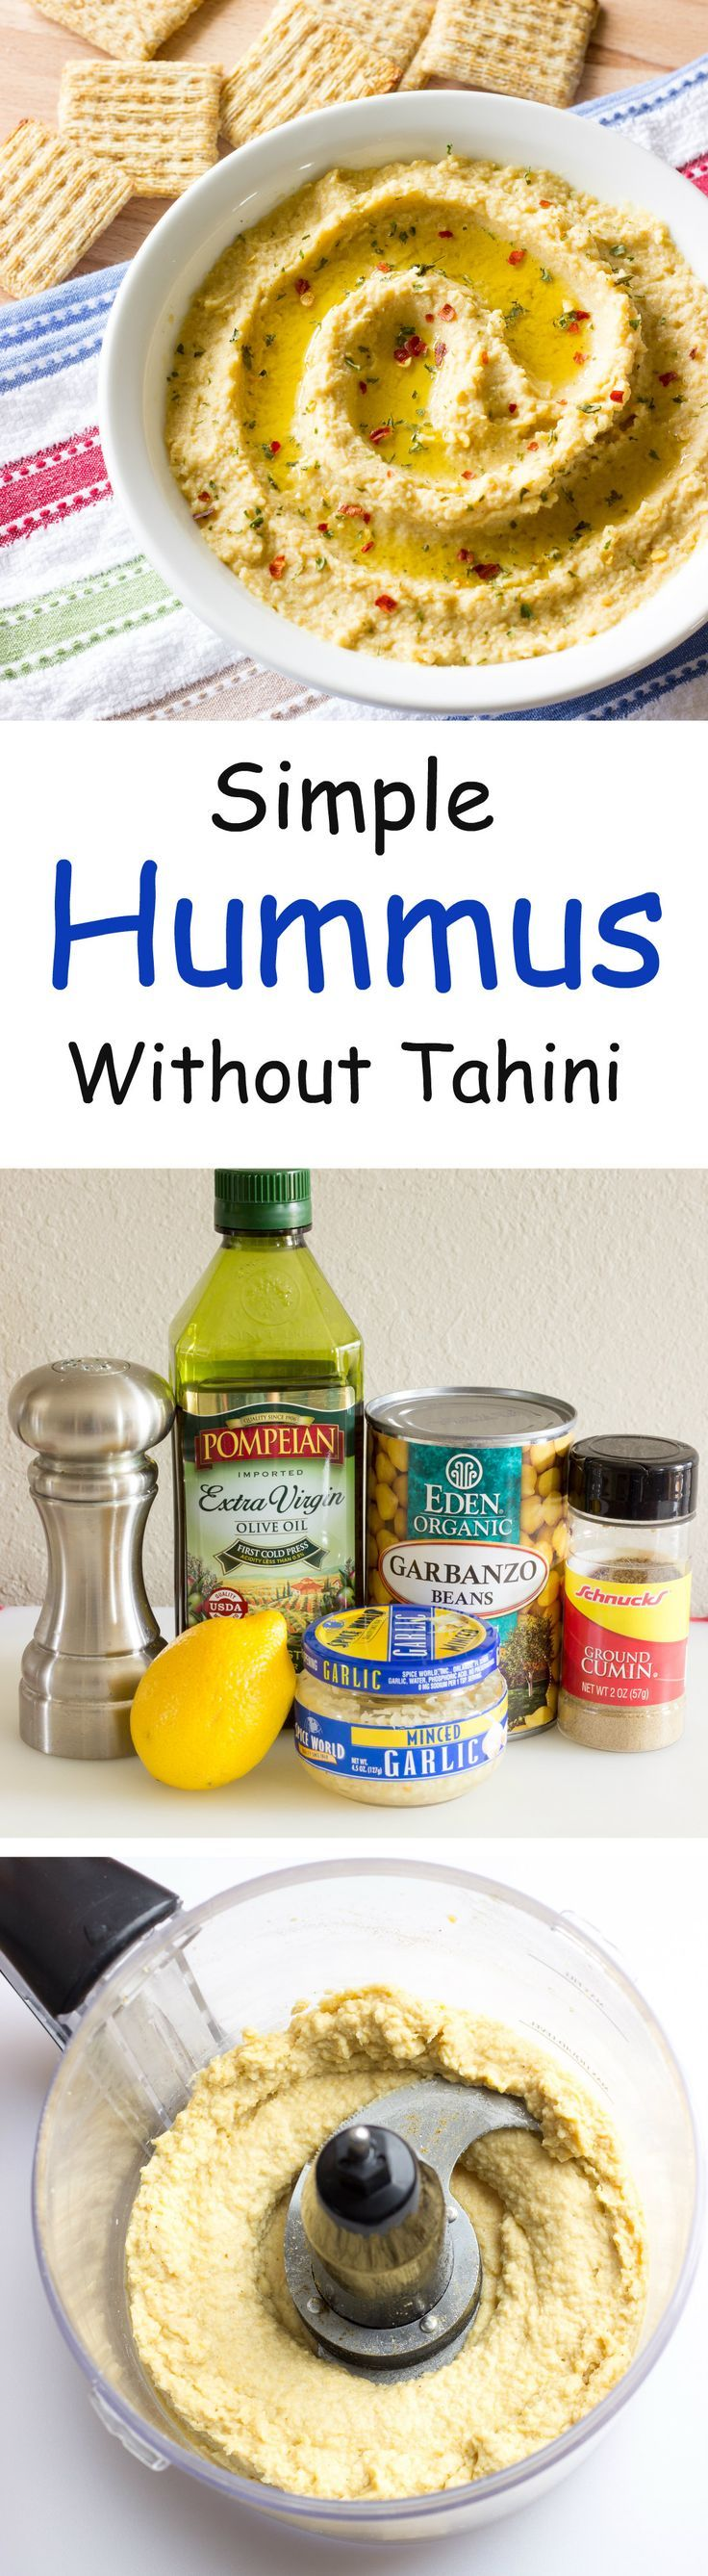 This simple hummus without tahini takes 5 minutes to prepare, uses common ingredients, and is so much cheaper than the packaged stuff.